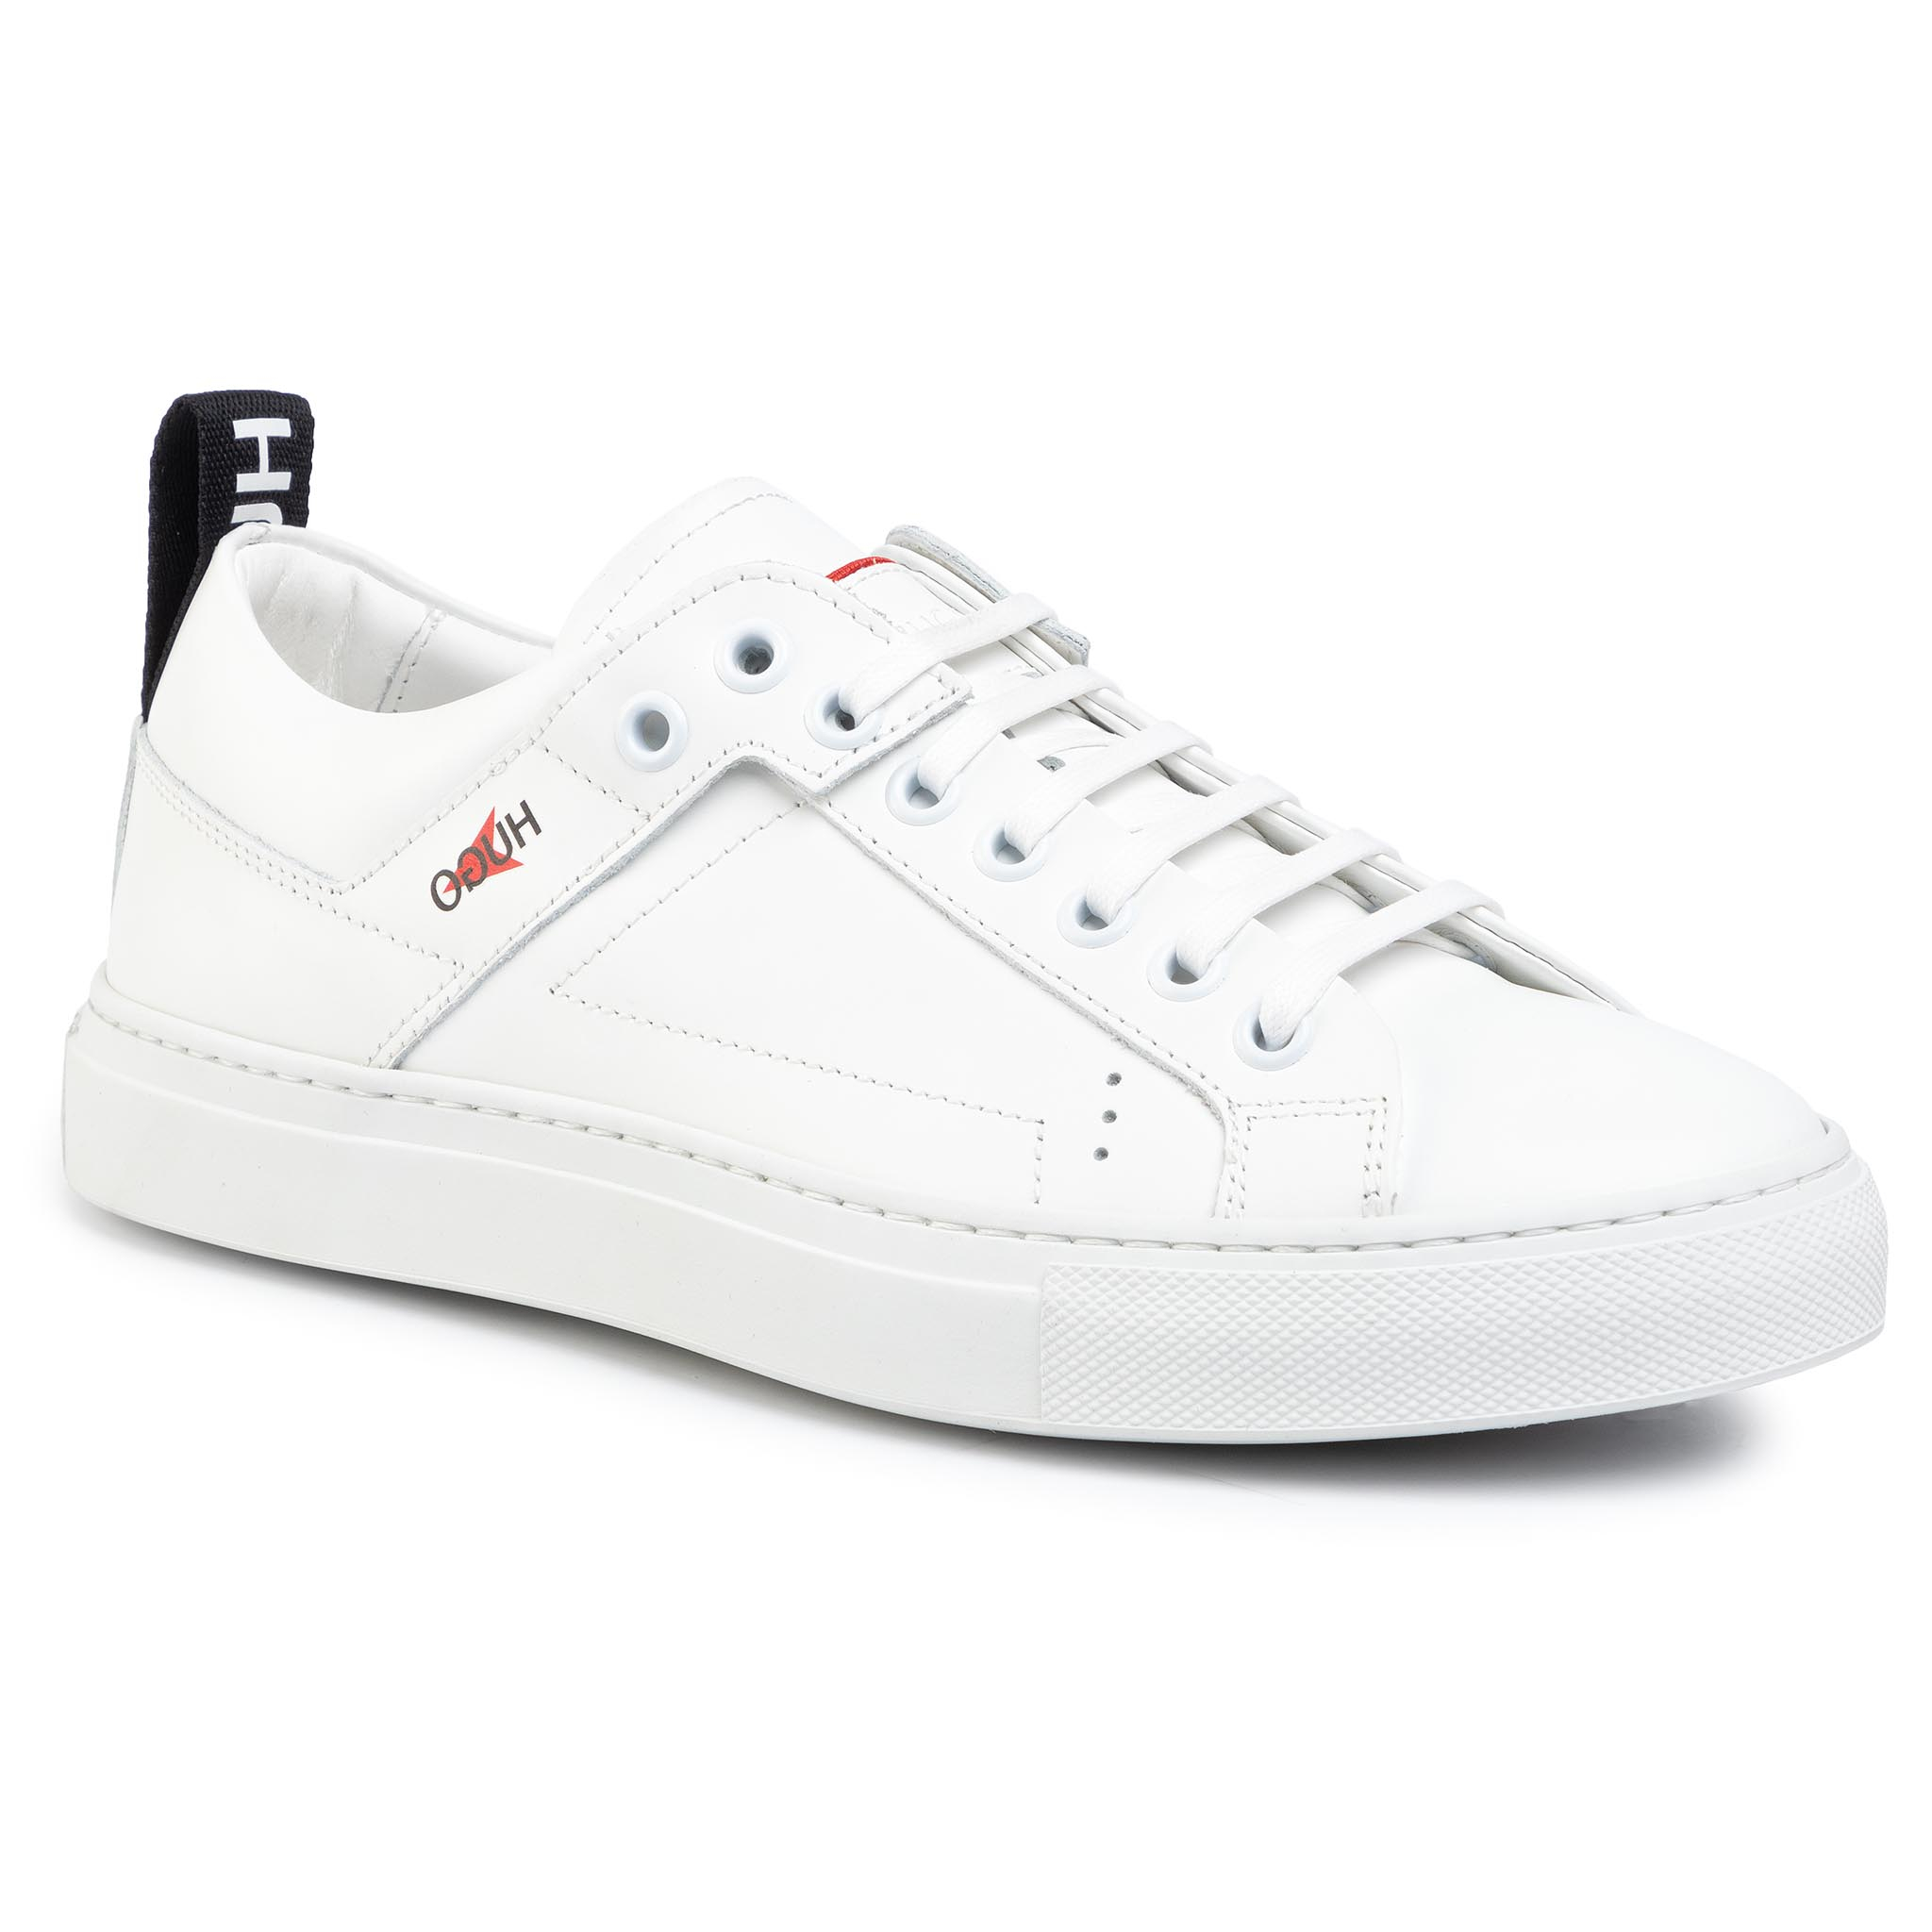 Sneakers HUGO - Mayfair Low Cut 50424278 White 100